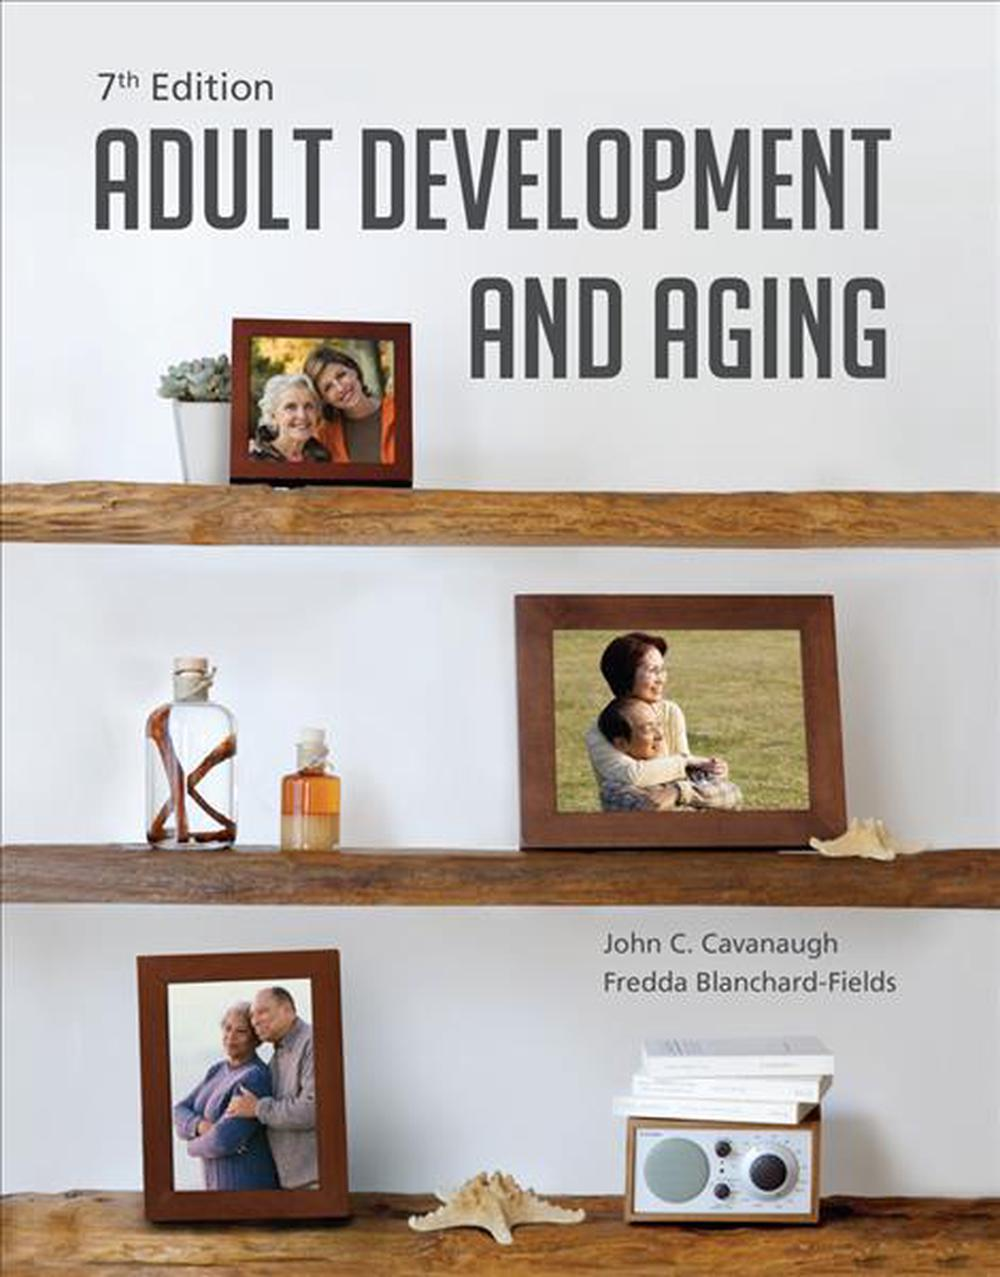 Adult Development and Aging, 7th Edition